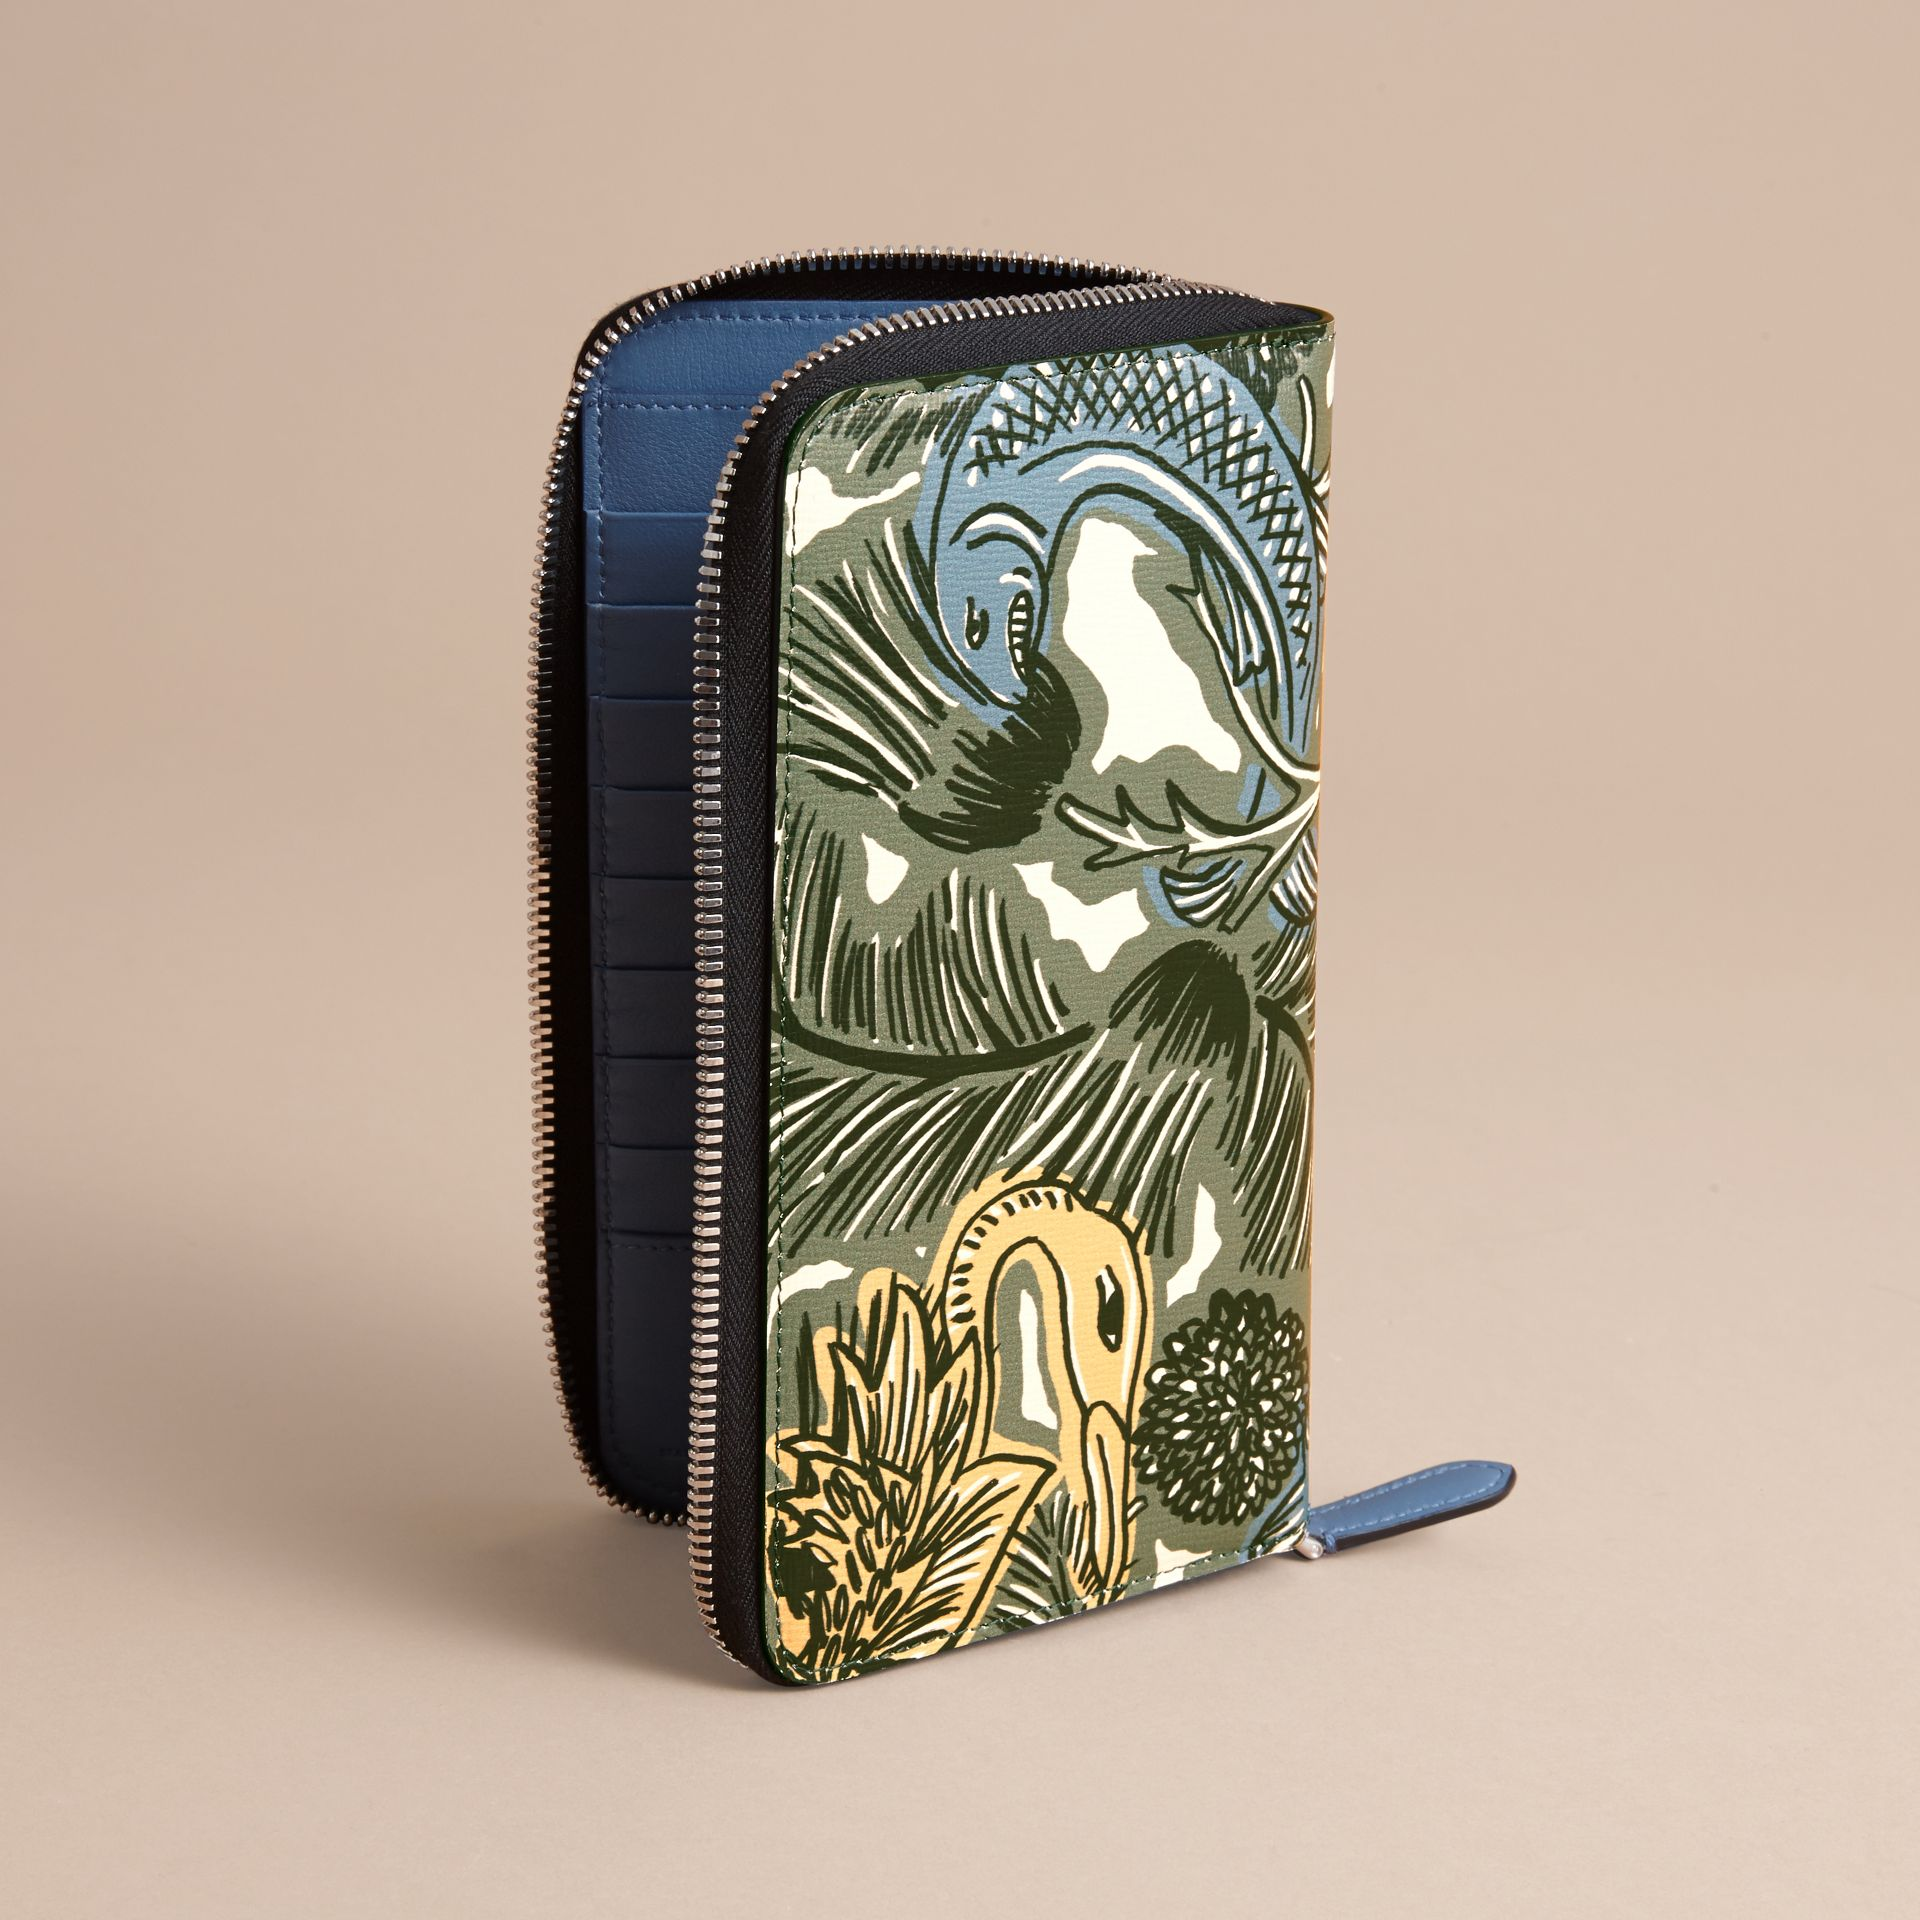 Beasts Print Leather Ziparound Wallet in Sage Green - Men | Burberry - gallery image 4